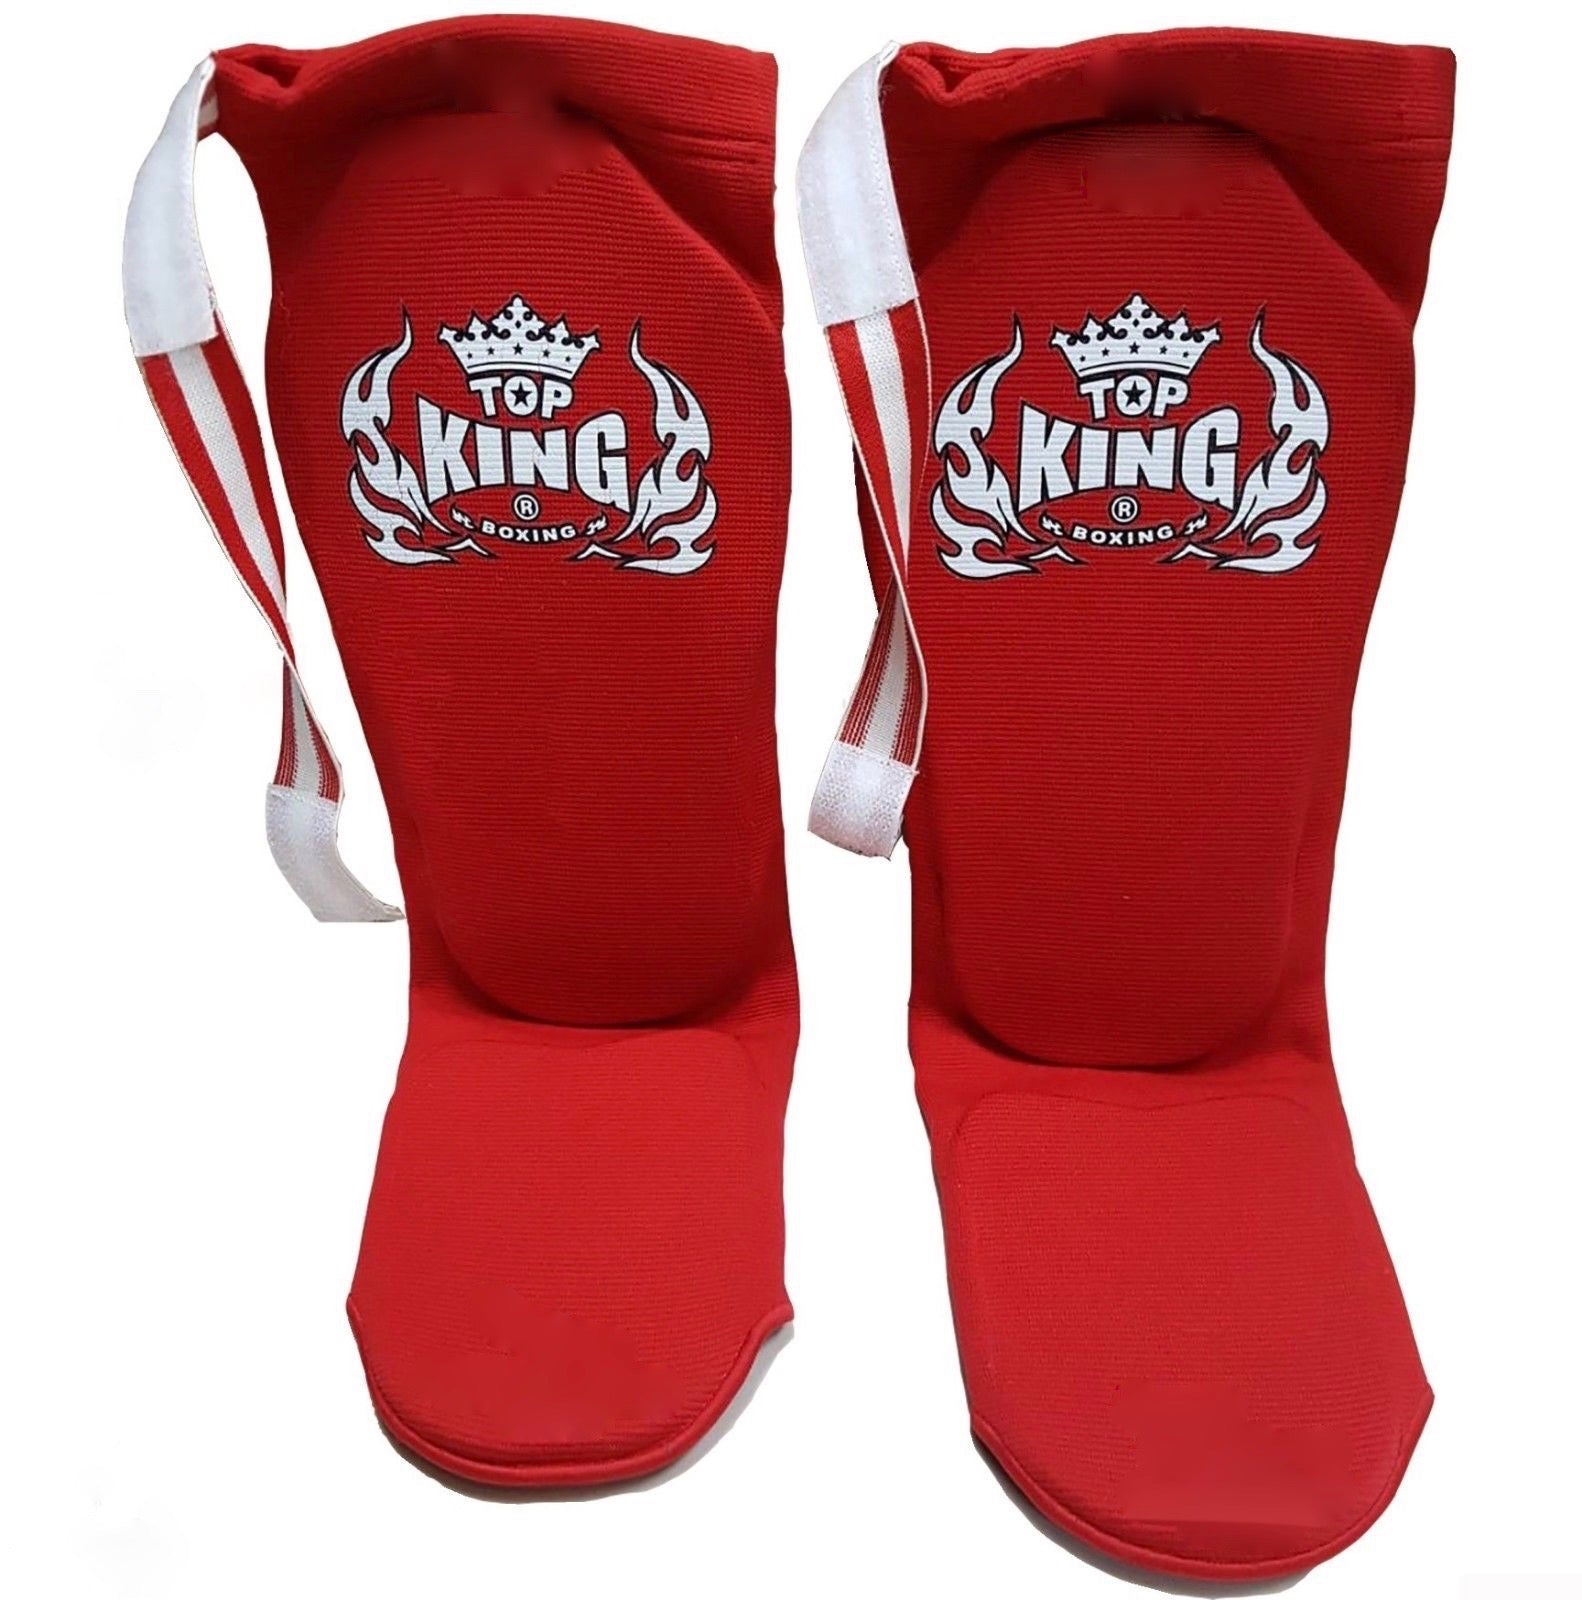 TOP KING ELASTIC SHIN PADS TKESP-01-3 COLORS AVAILABLE